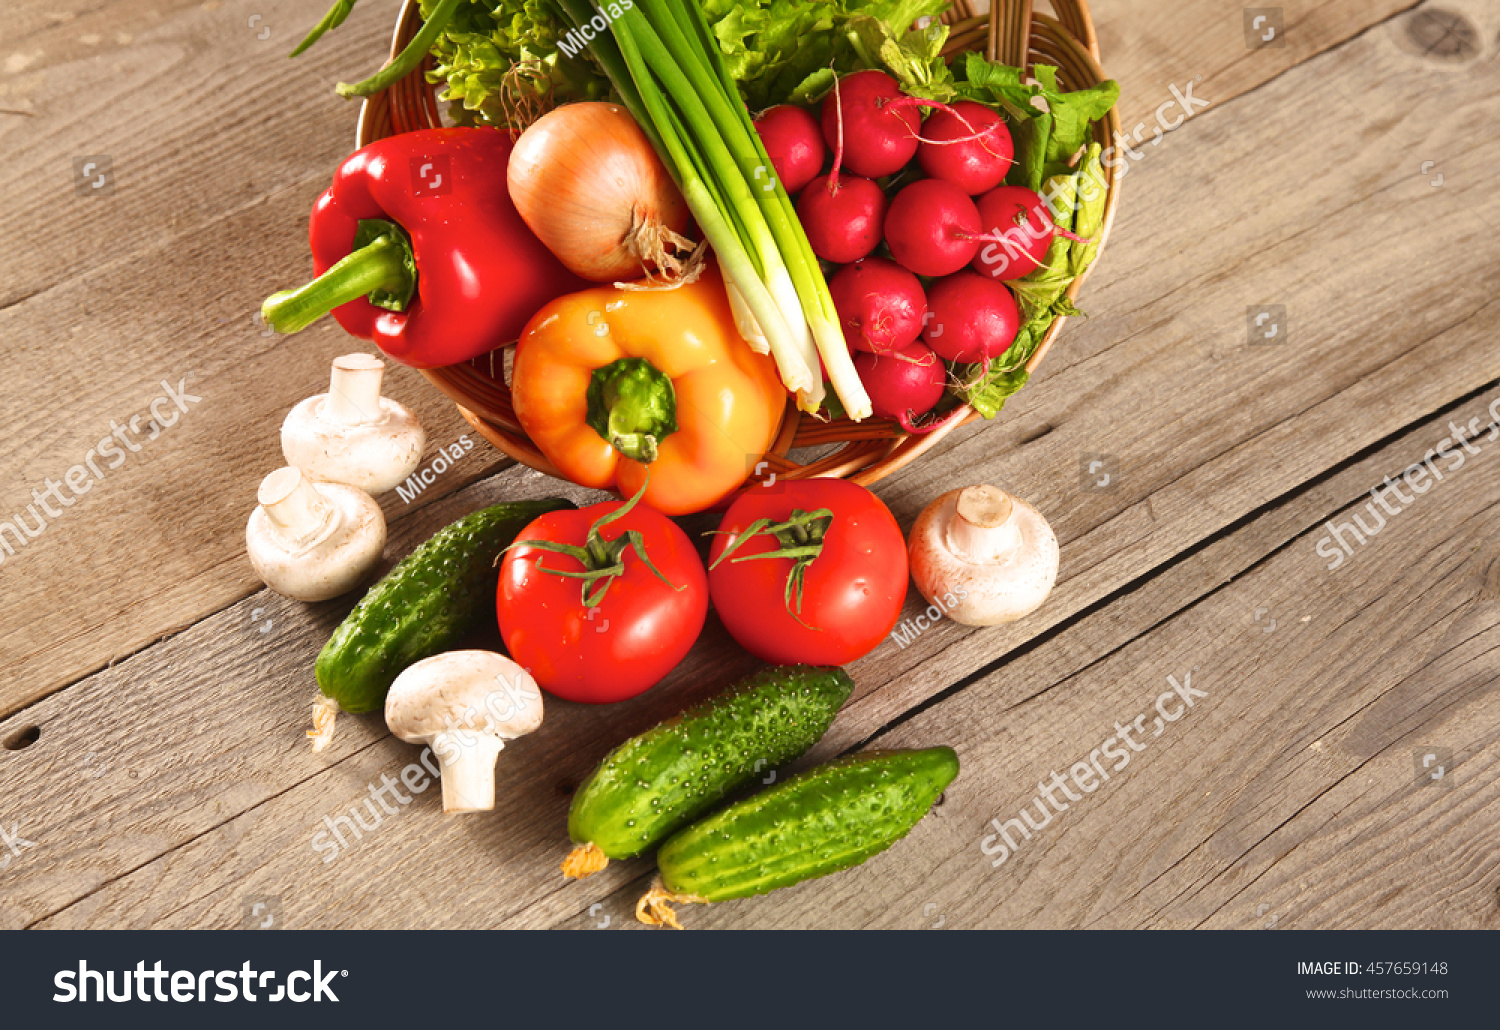 Fresh Vegetables On A Clean Wooden Table Stock Photo 457659148